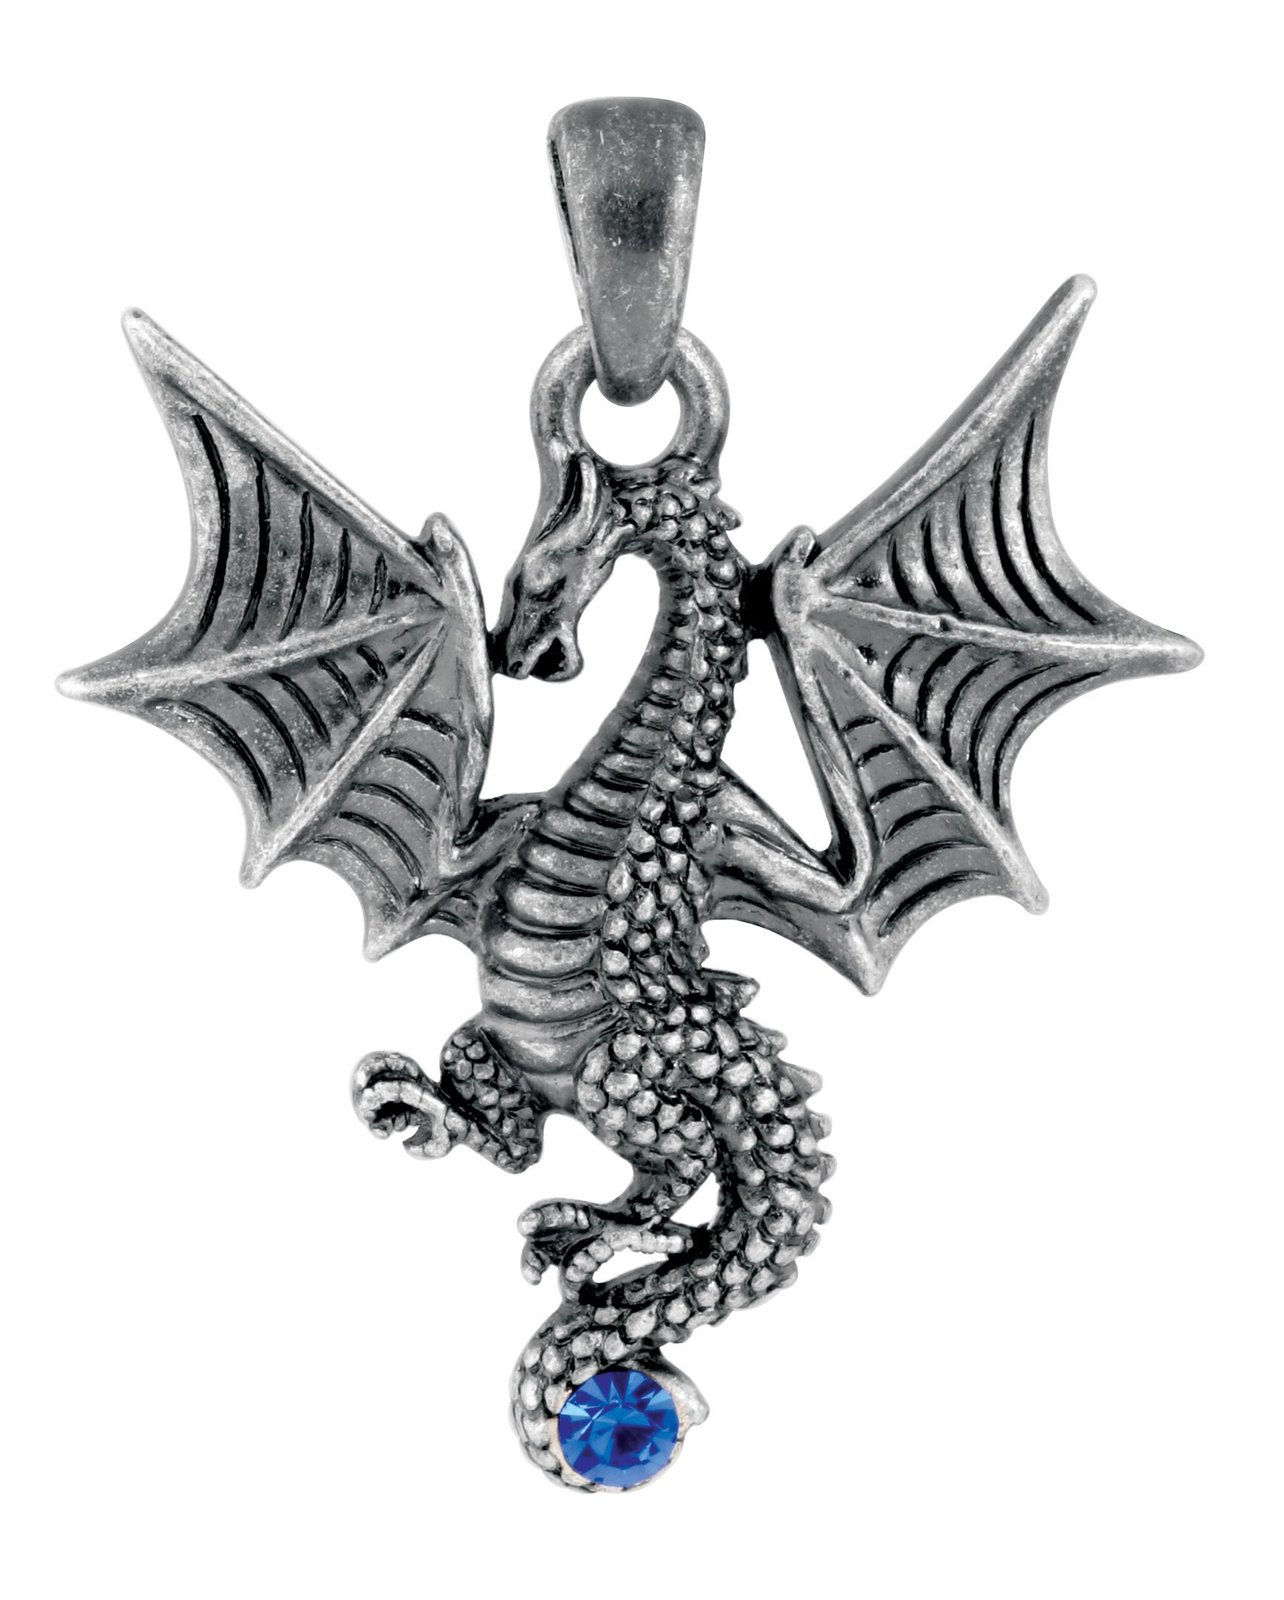 YTC Summit New Blue Tatsu Dragon Pendant Collectible Accessory Serpent Necklace